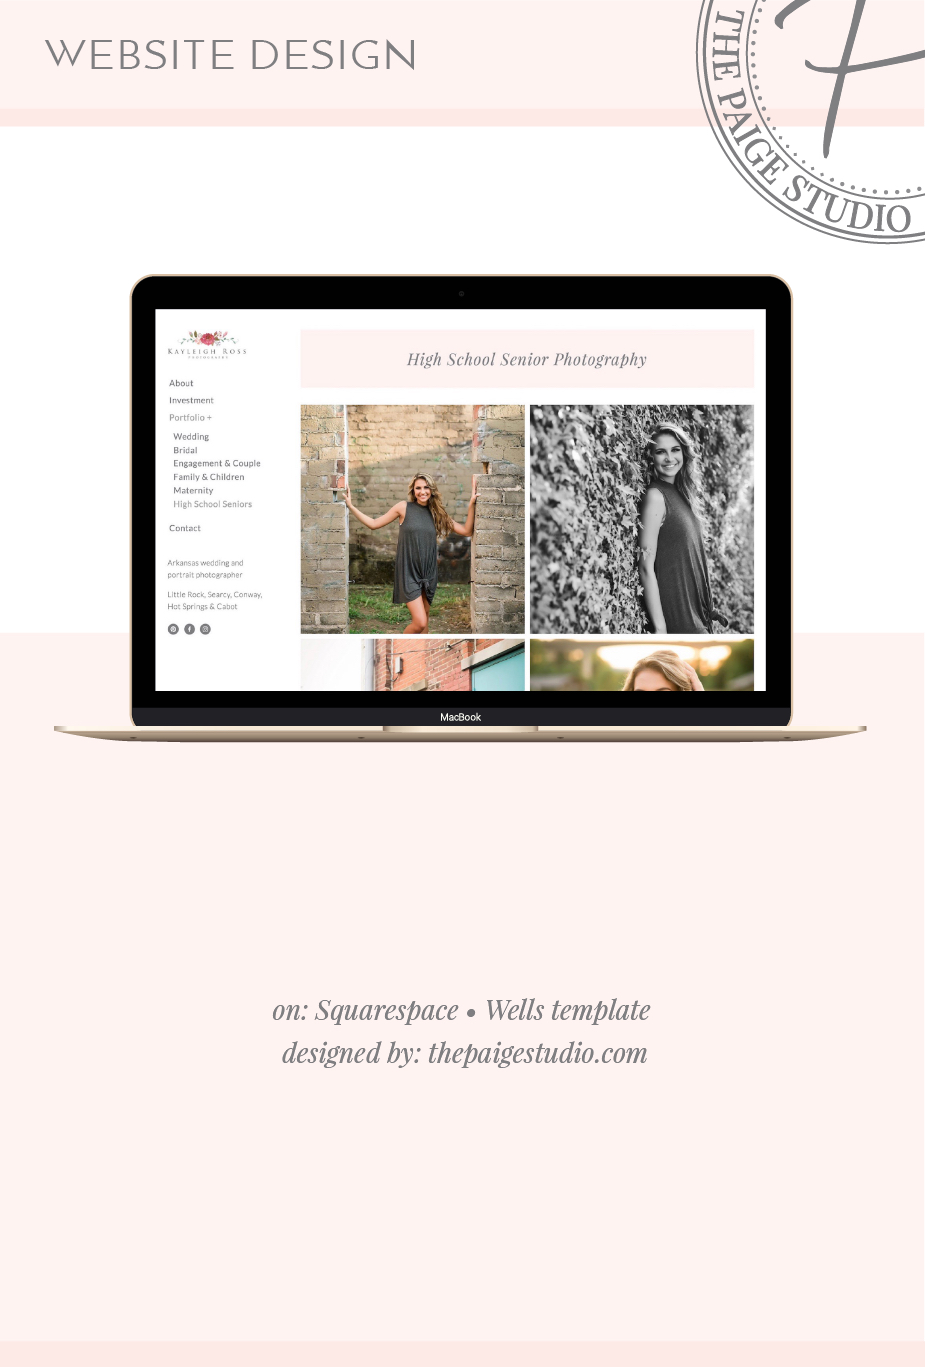 Photographer+website+designed+by+The+Paige+Studio+on+Squarespace,+Wells+template.jpg